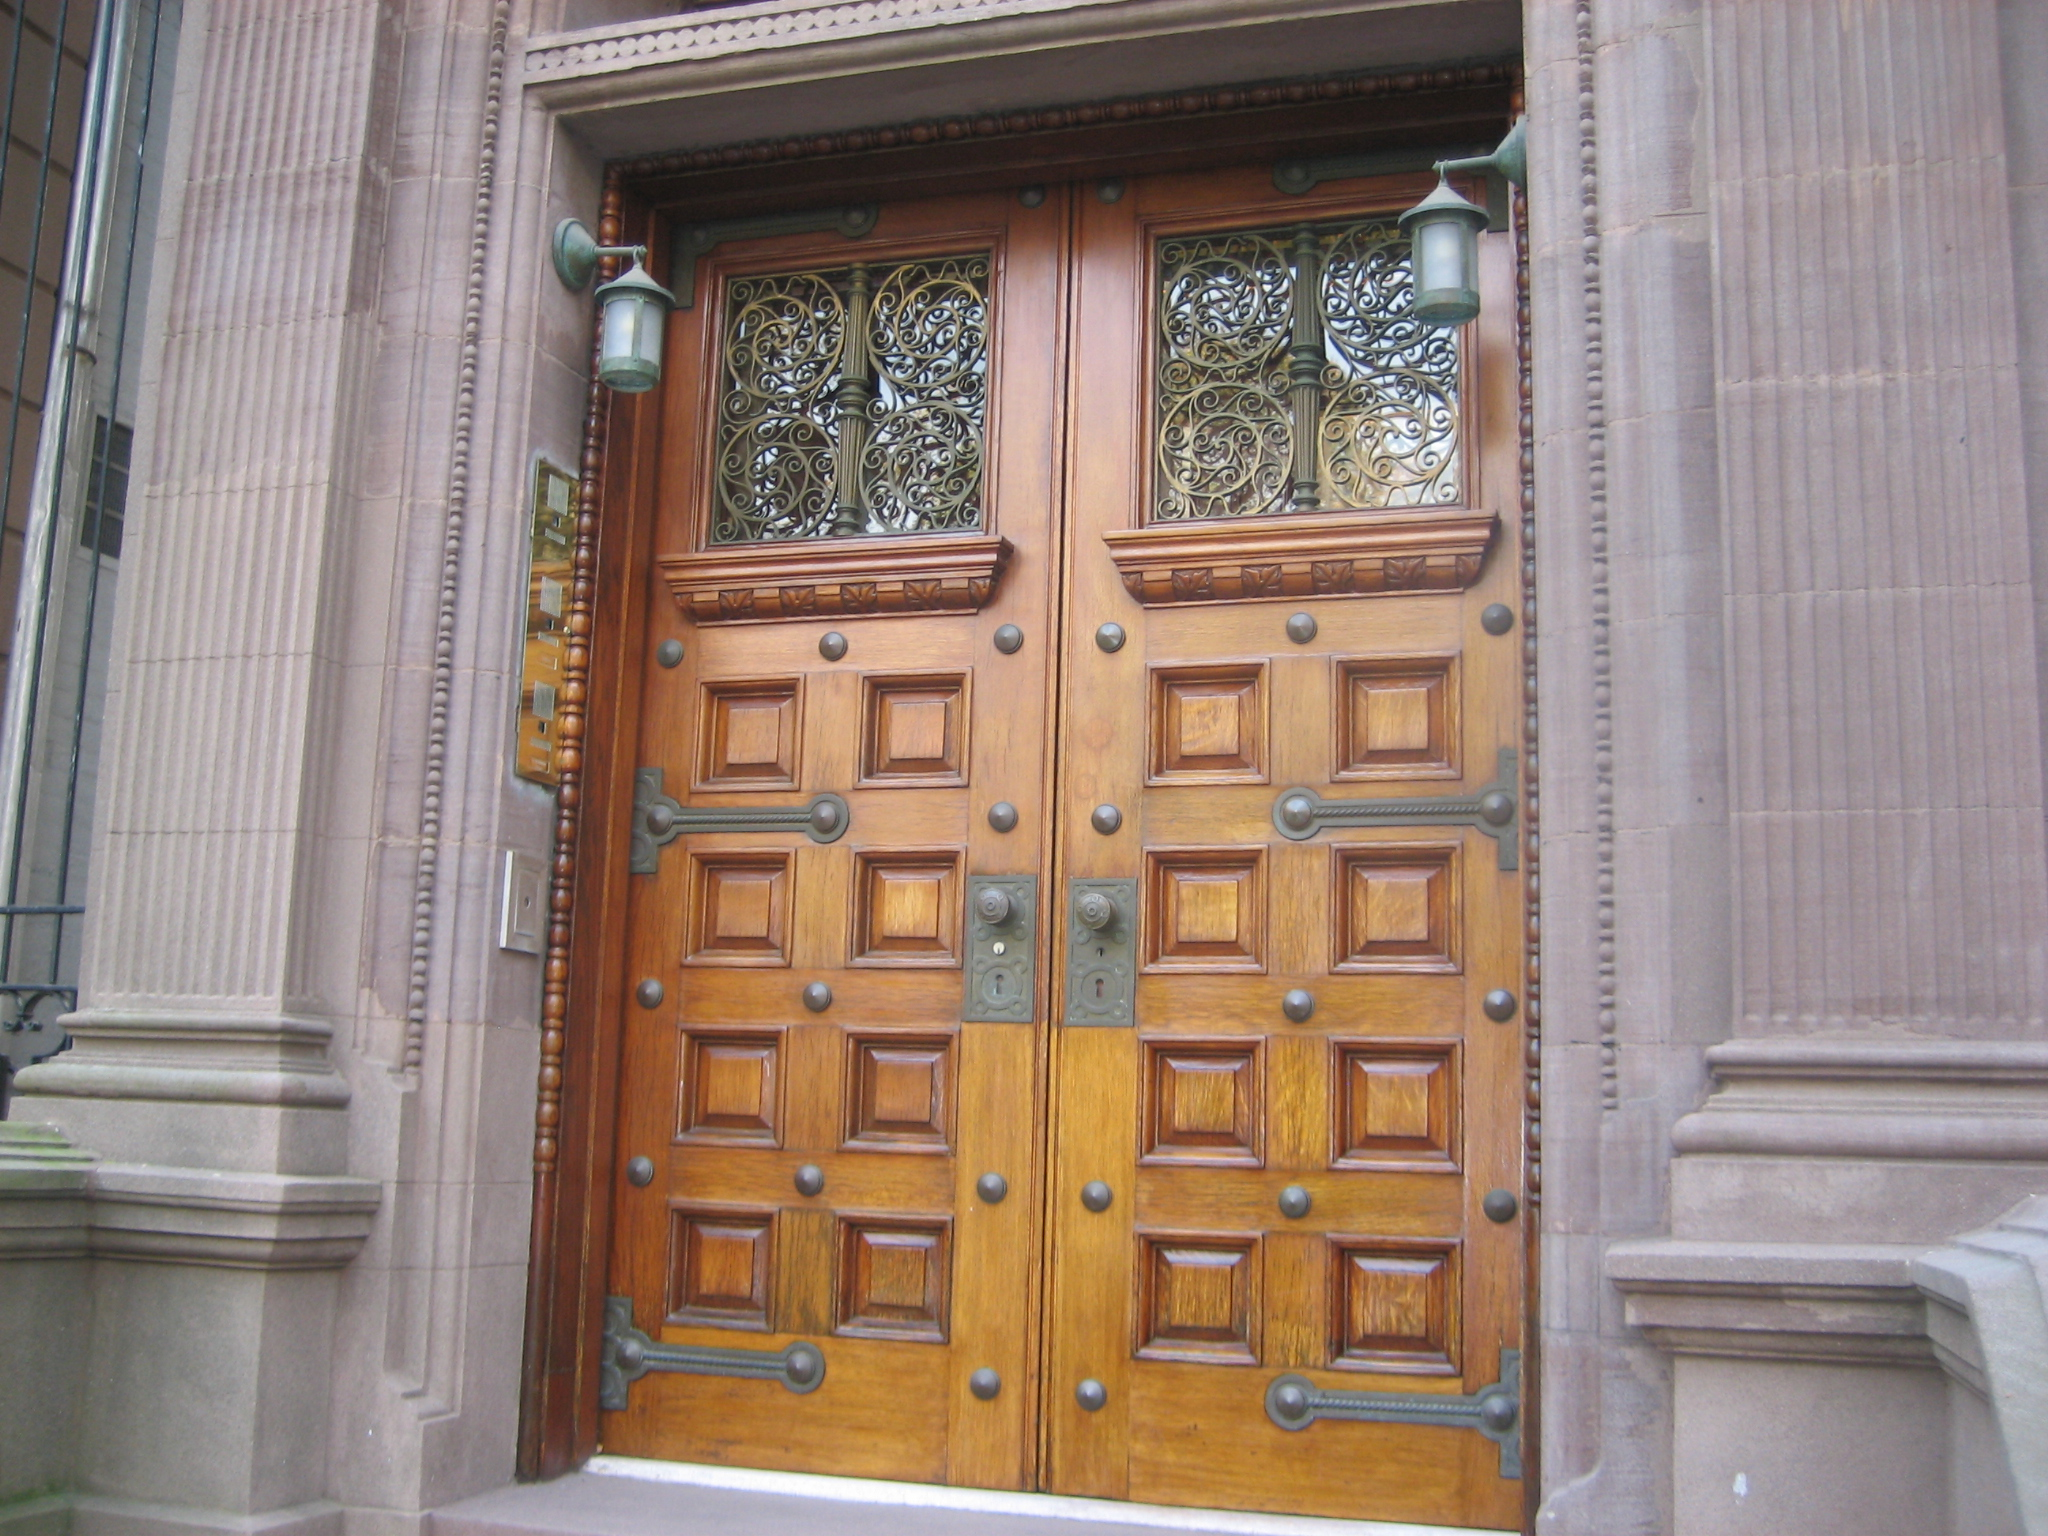 conserved and restored the original exterior doors